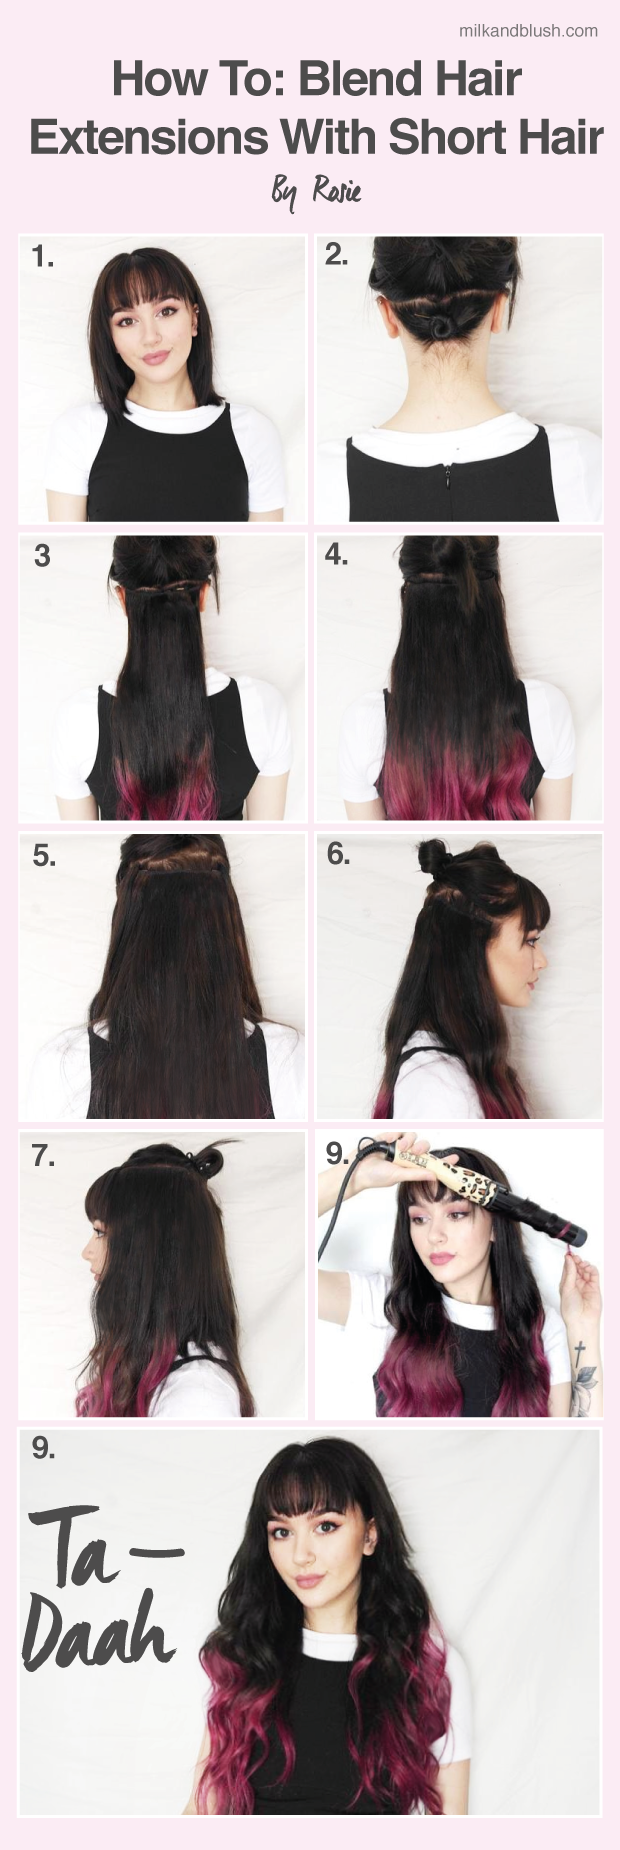 How To Blend Hair Extensions With Short Hair By Rosie Hair